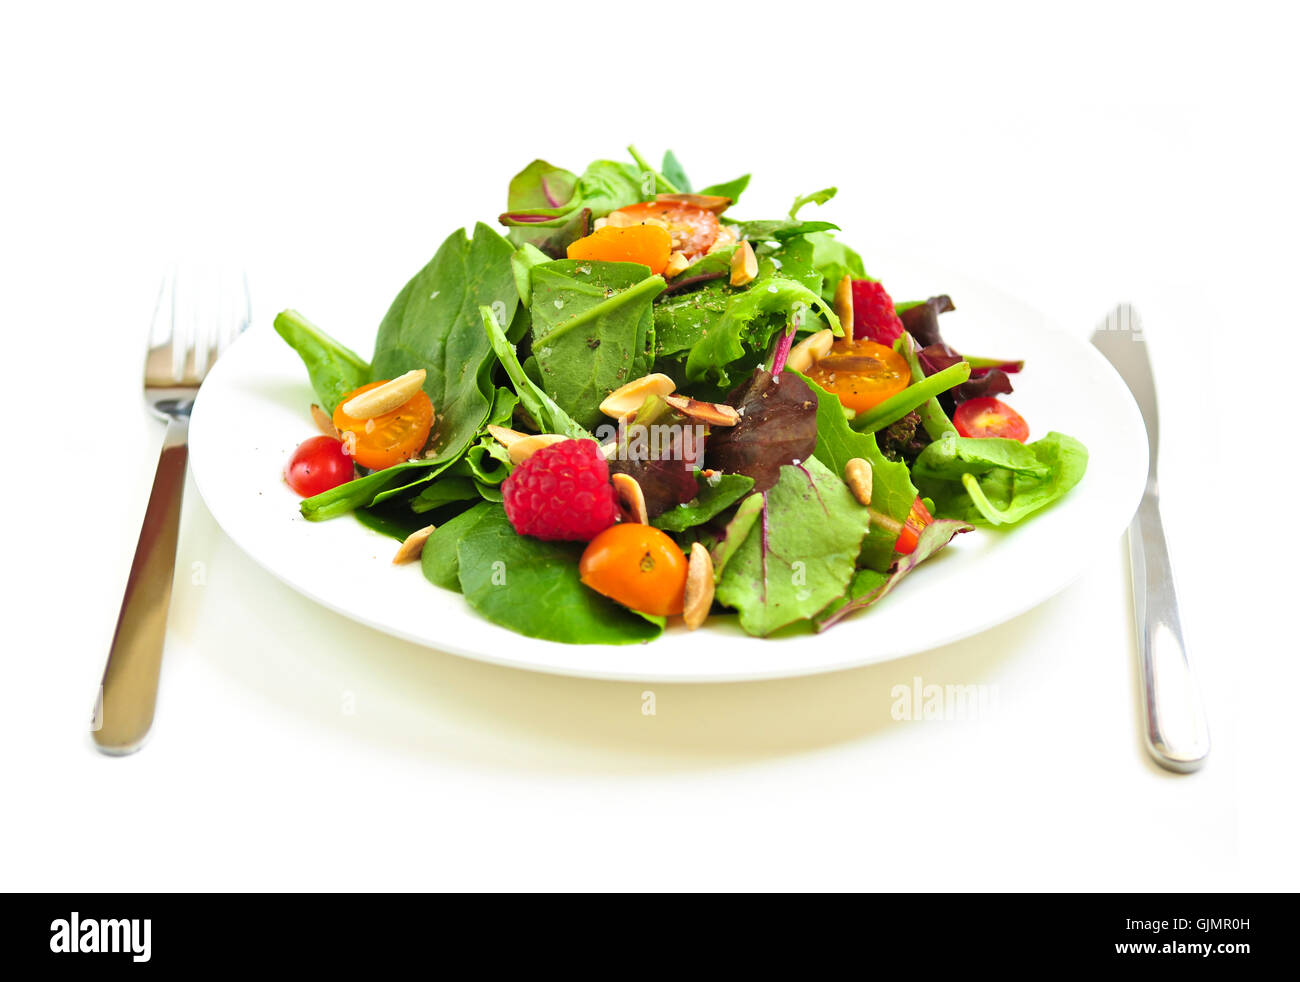 berries food dish - Stock Image